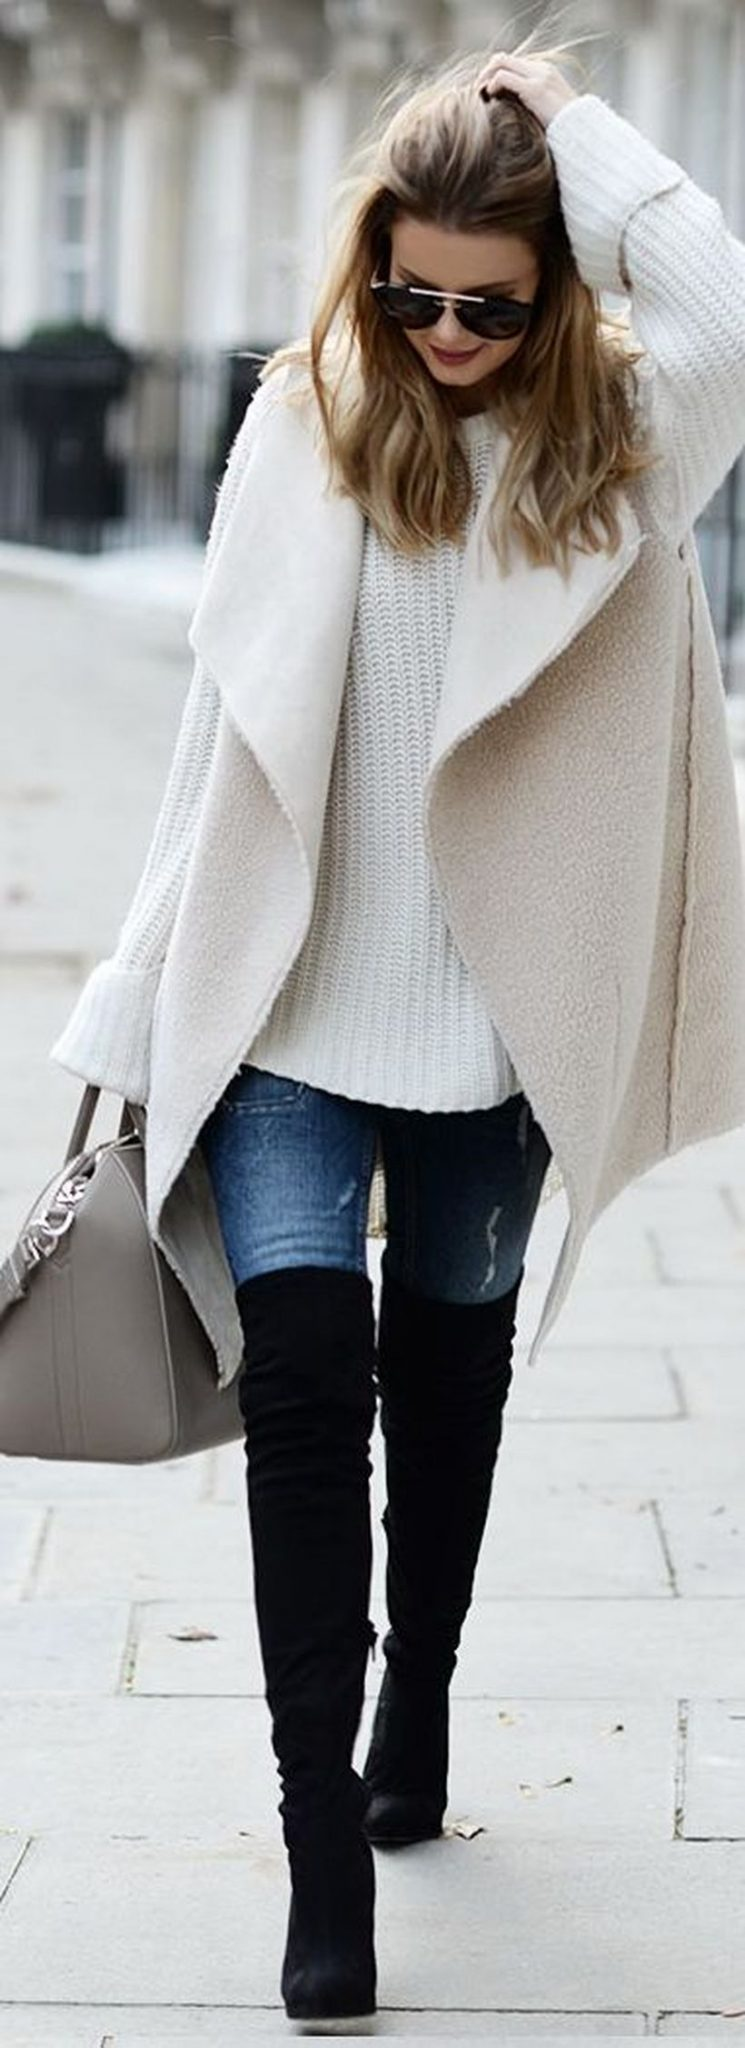 Fashionable outfit style for winter 2017 18